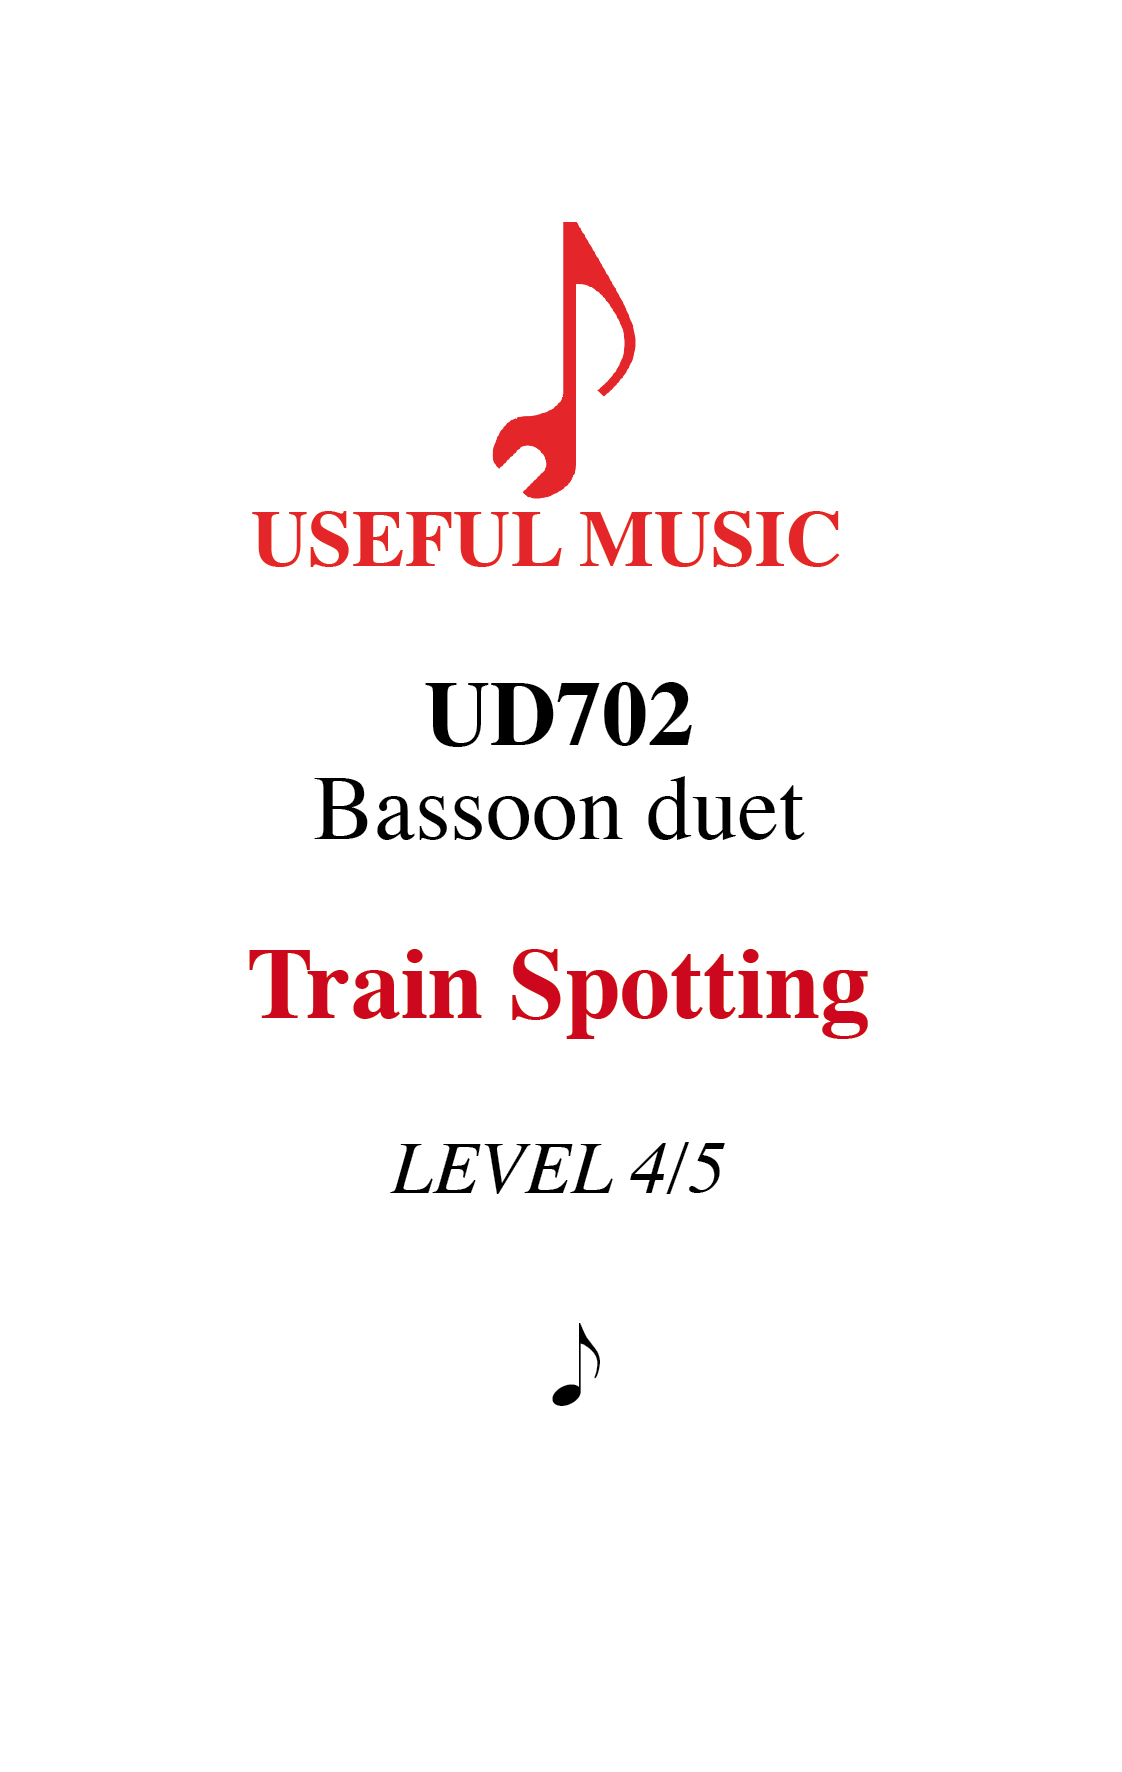 Train Spotting - bassoon duet